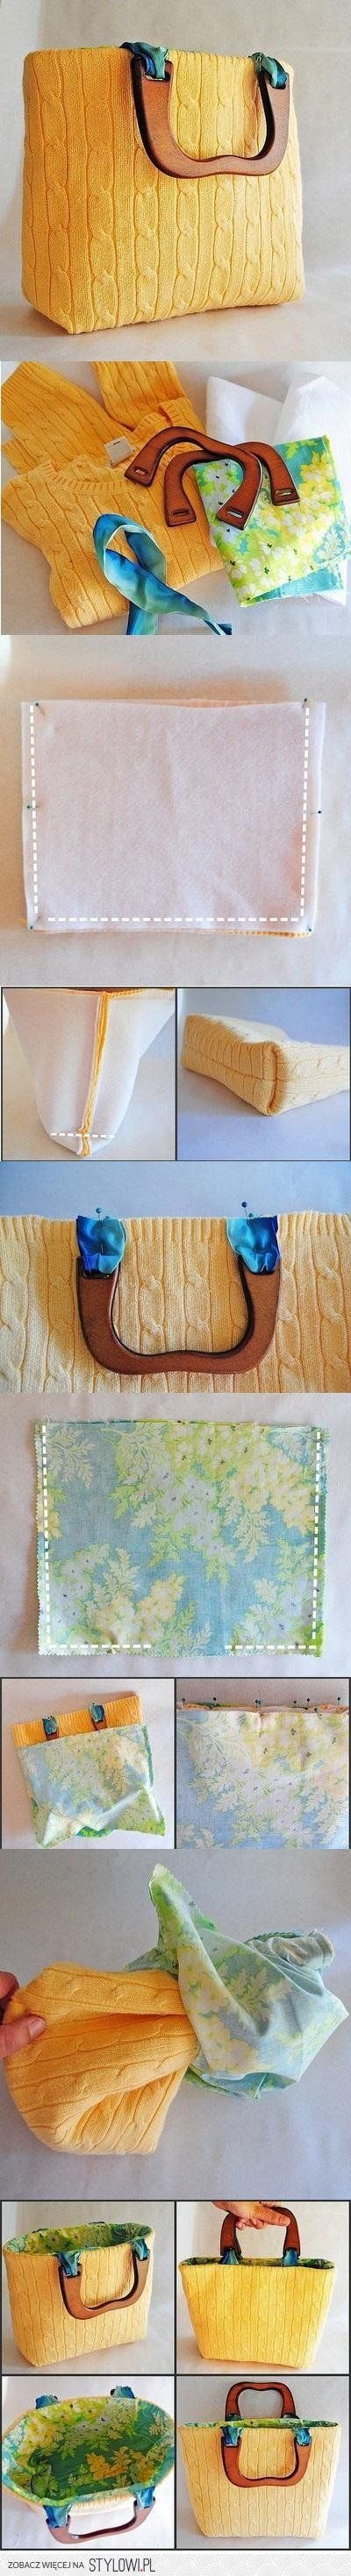 Cute purse out of an old sweater! #DIY #repurpose upcycle.